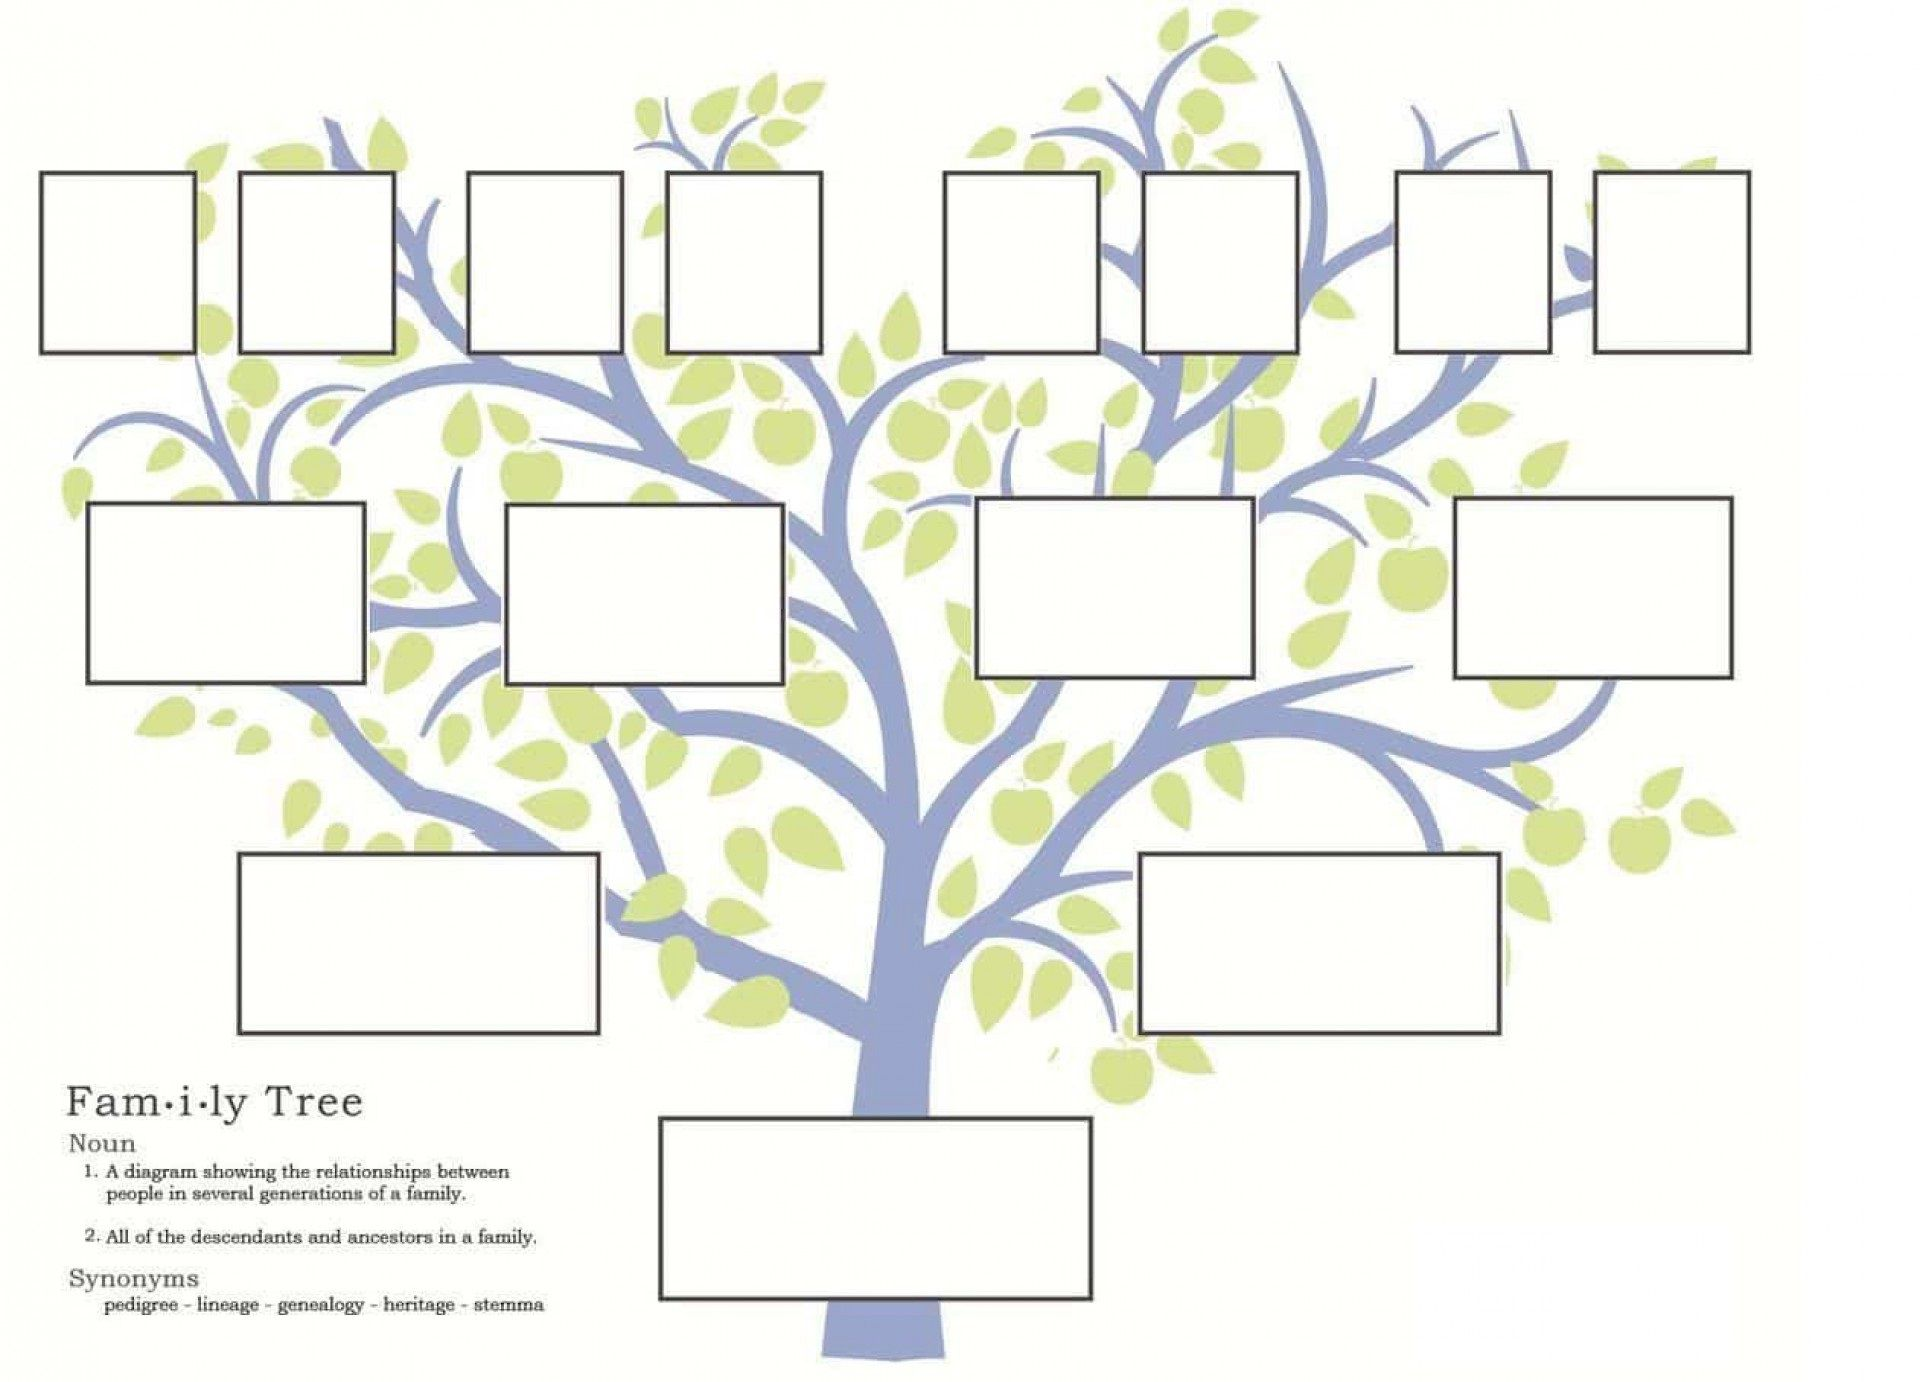 007 Breathtaking Free Editable Family Tree Template For Mac Concept Full